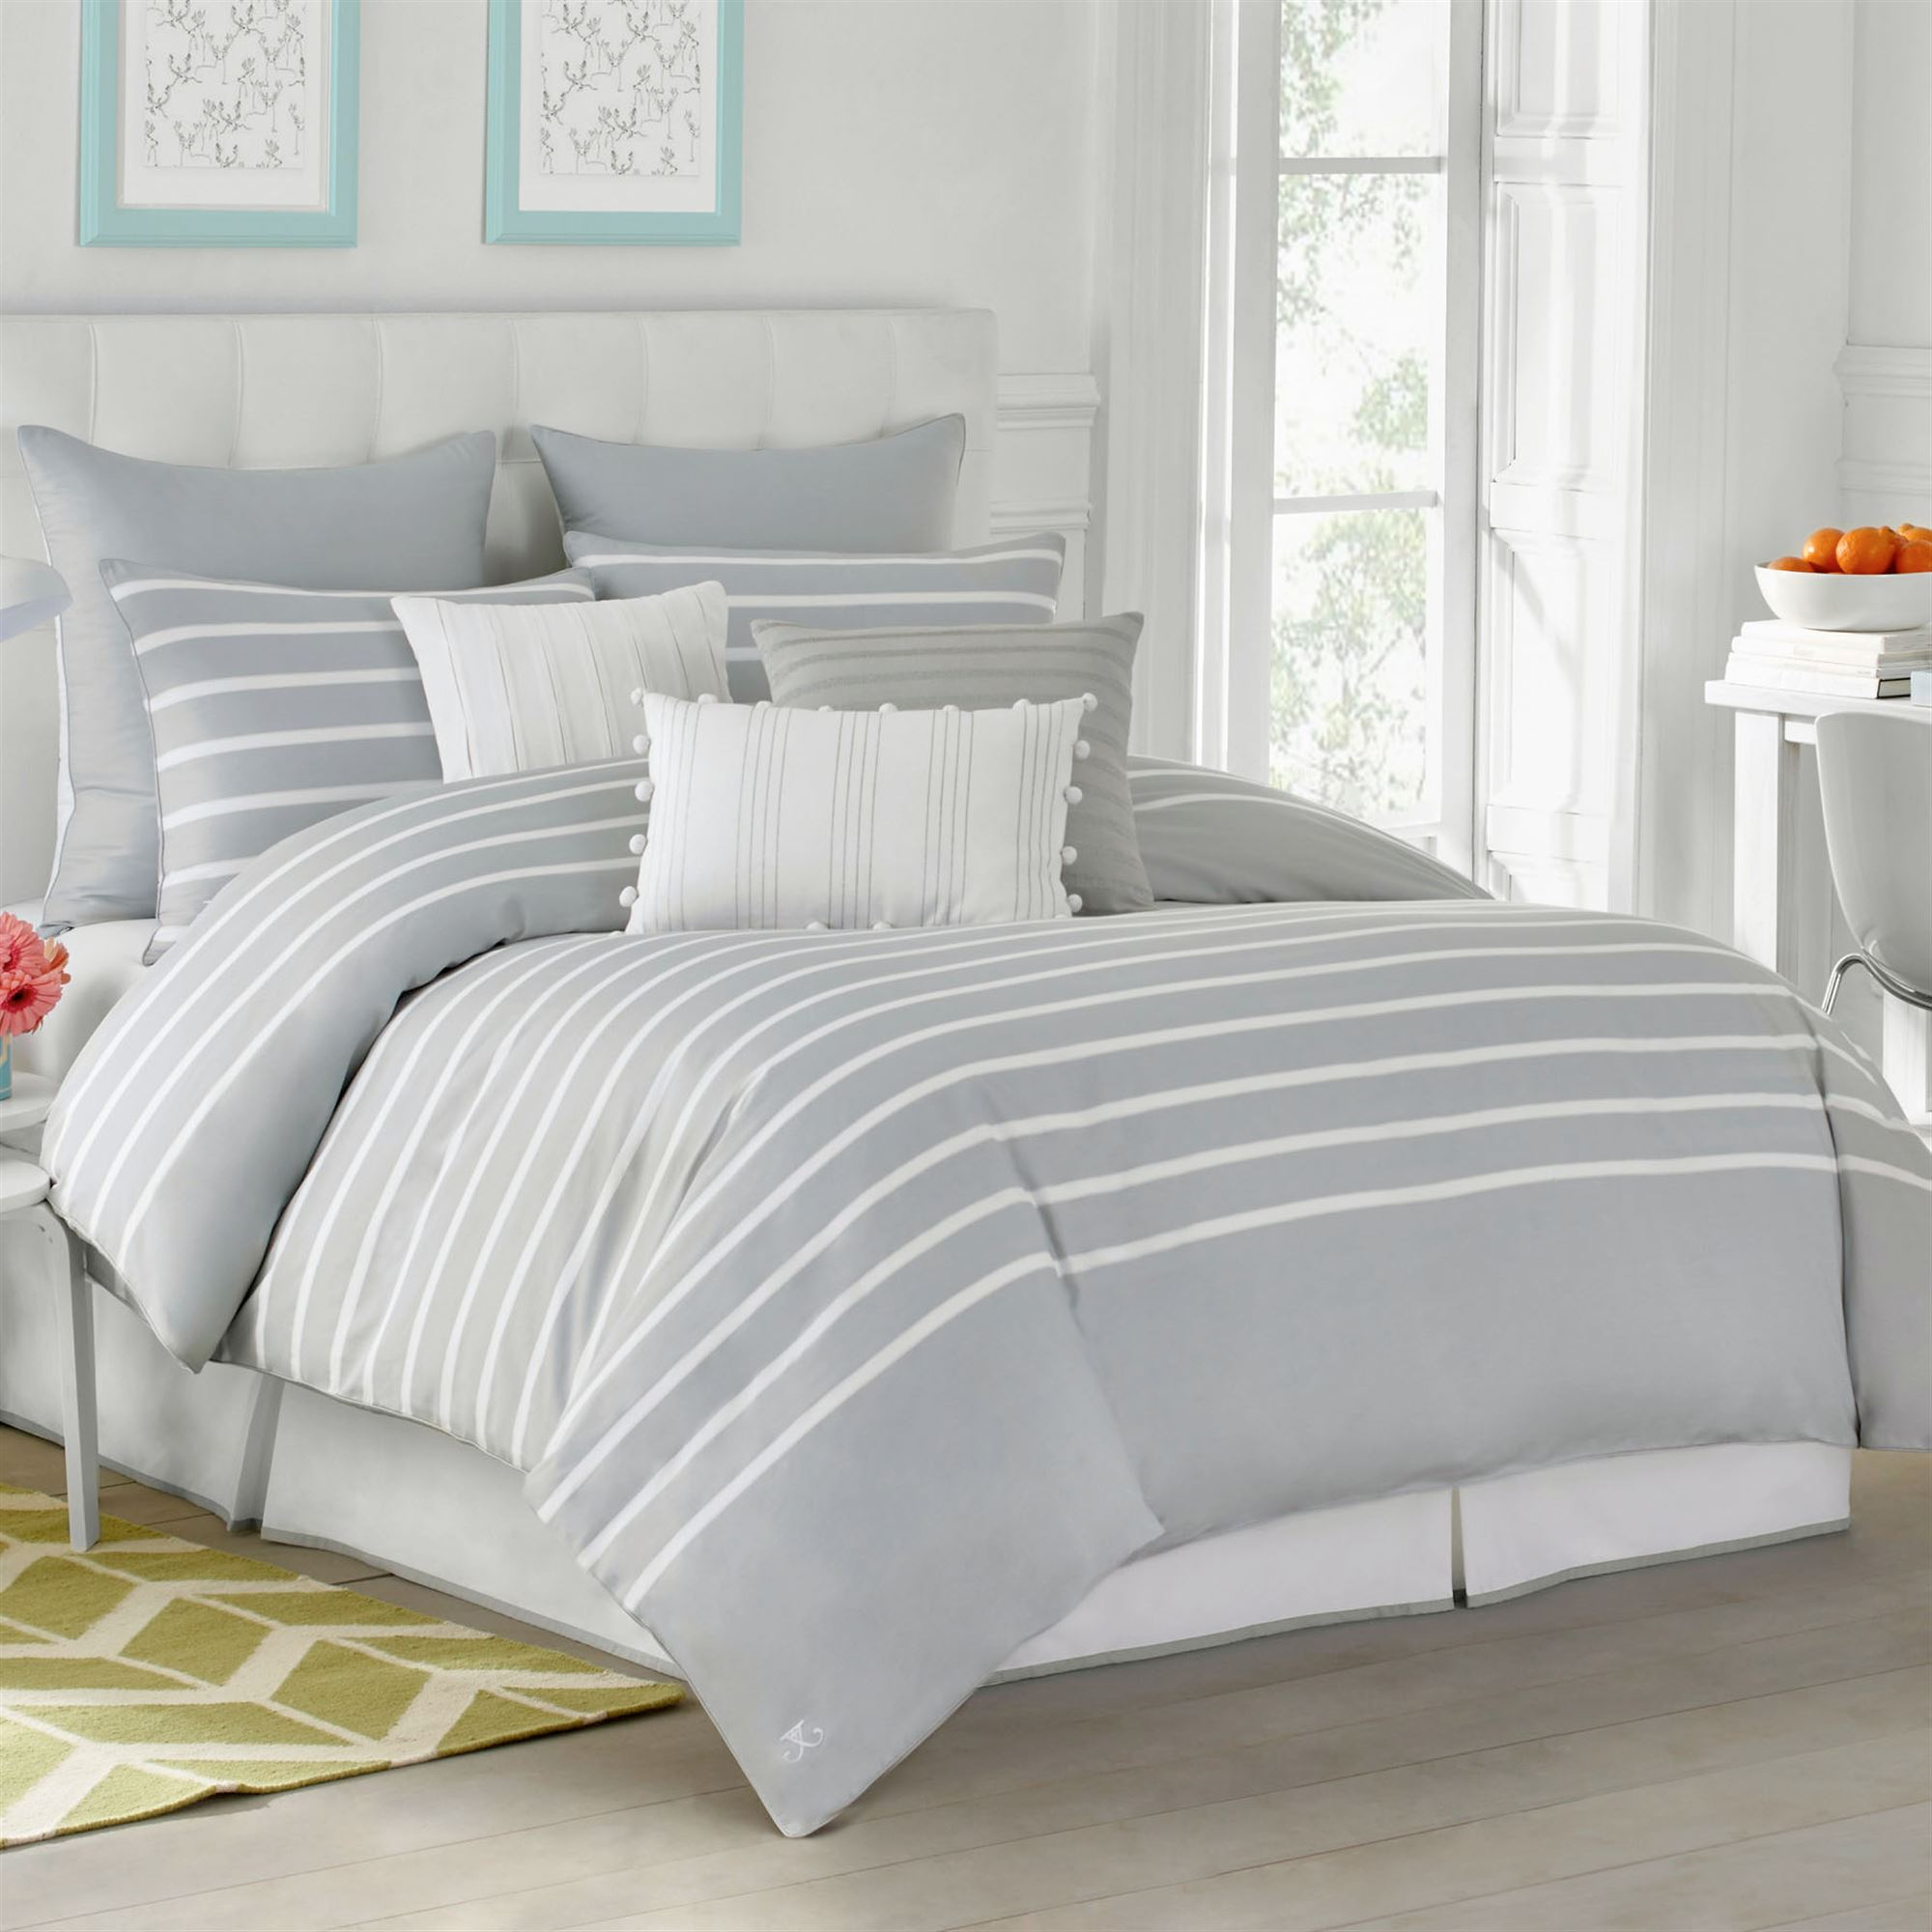 full bedding idea throughout comforter set gray bedroom cheap bathroom your residence immaculate for sets bed